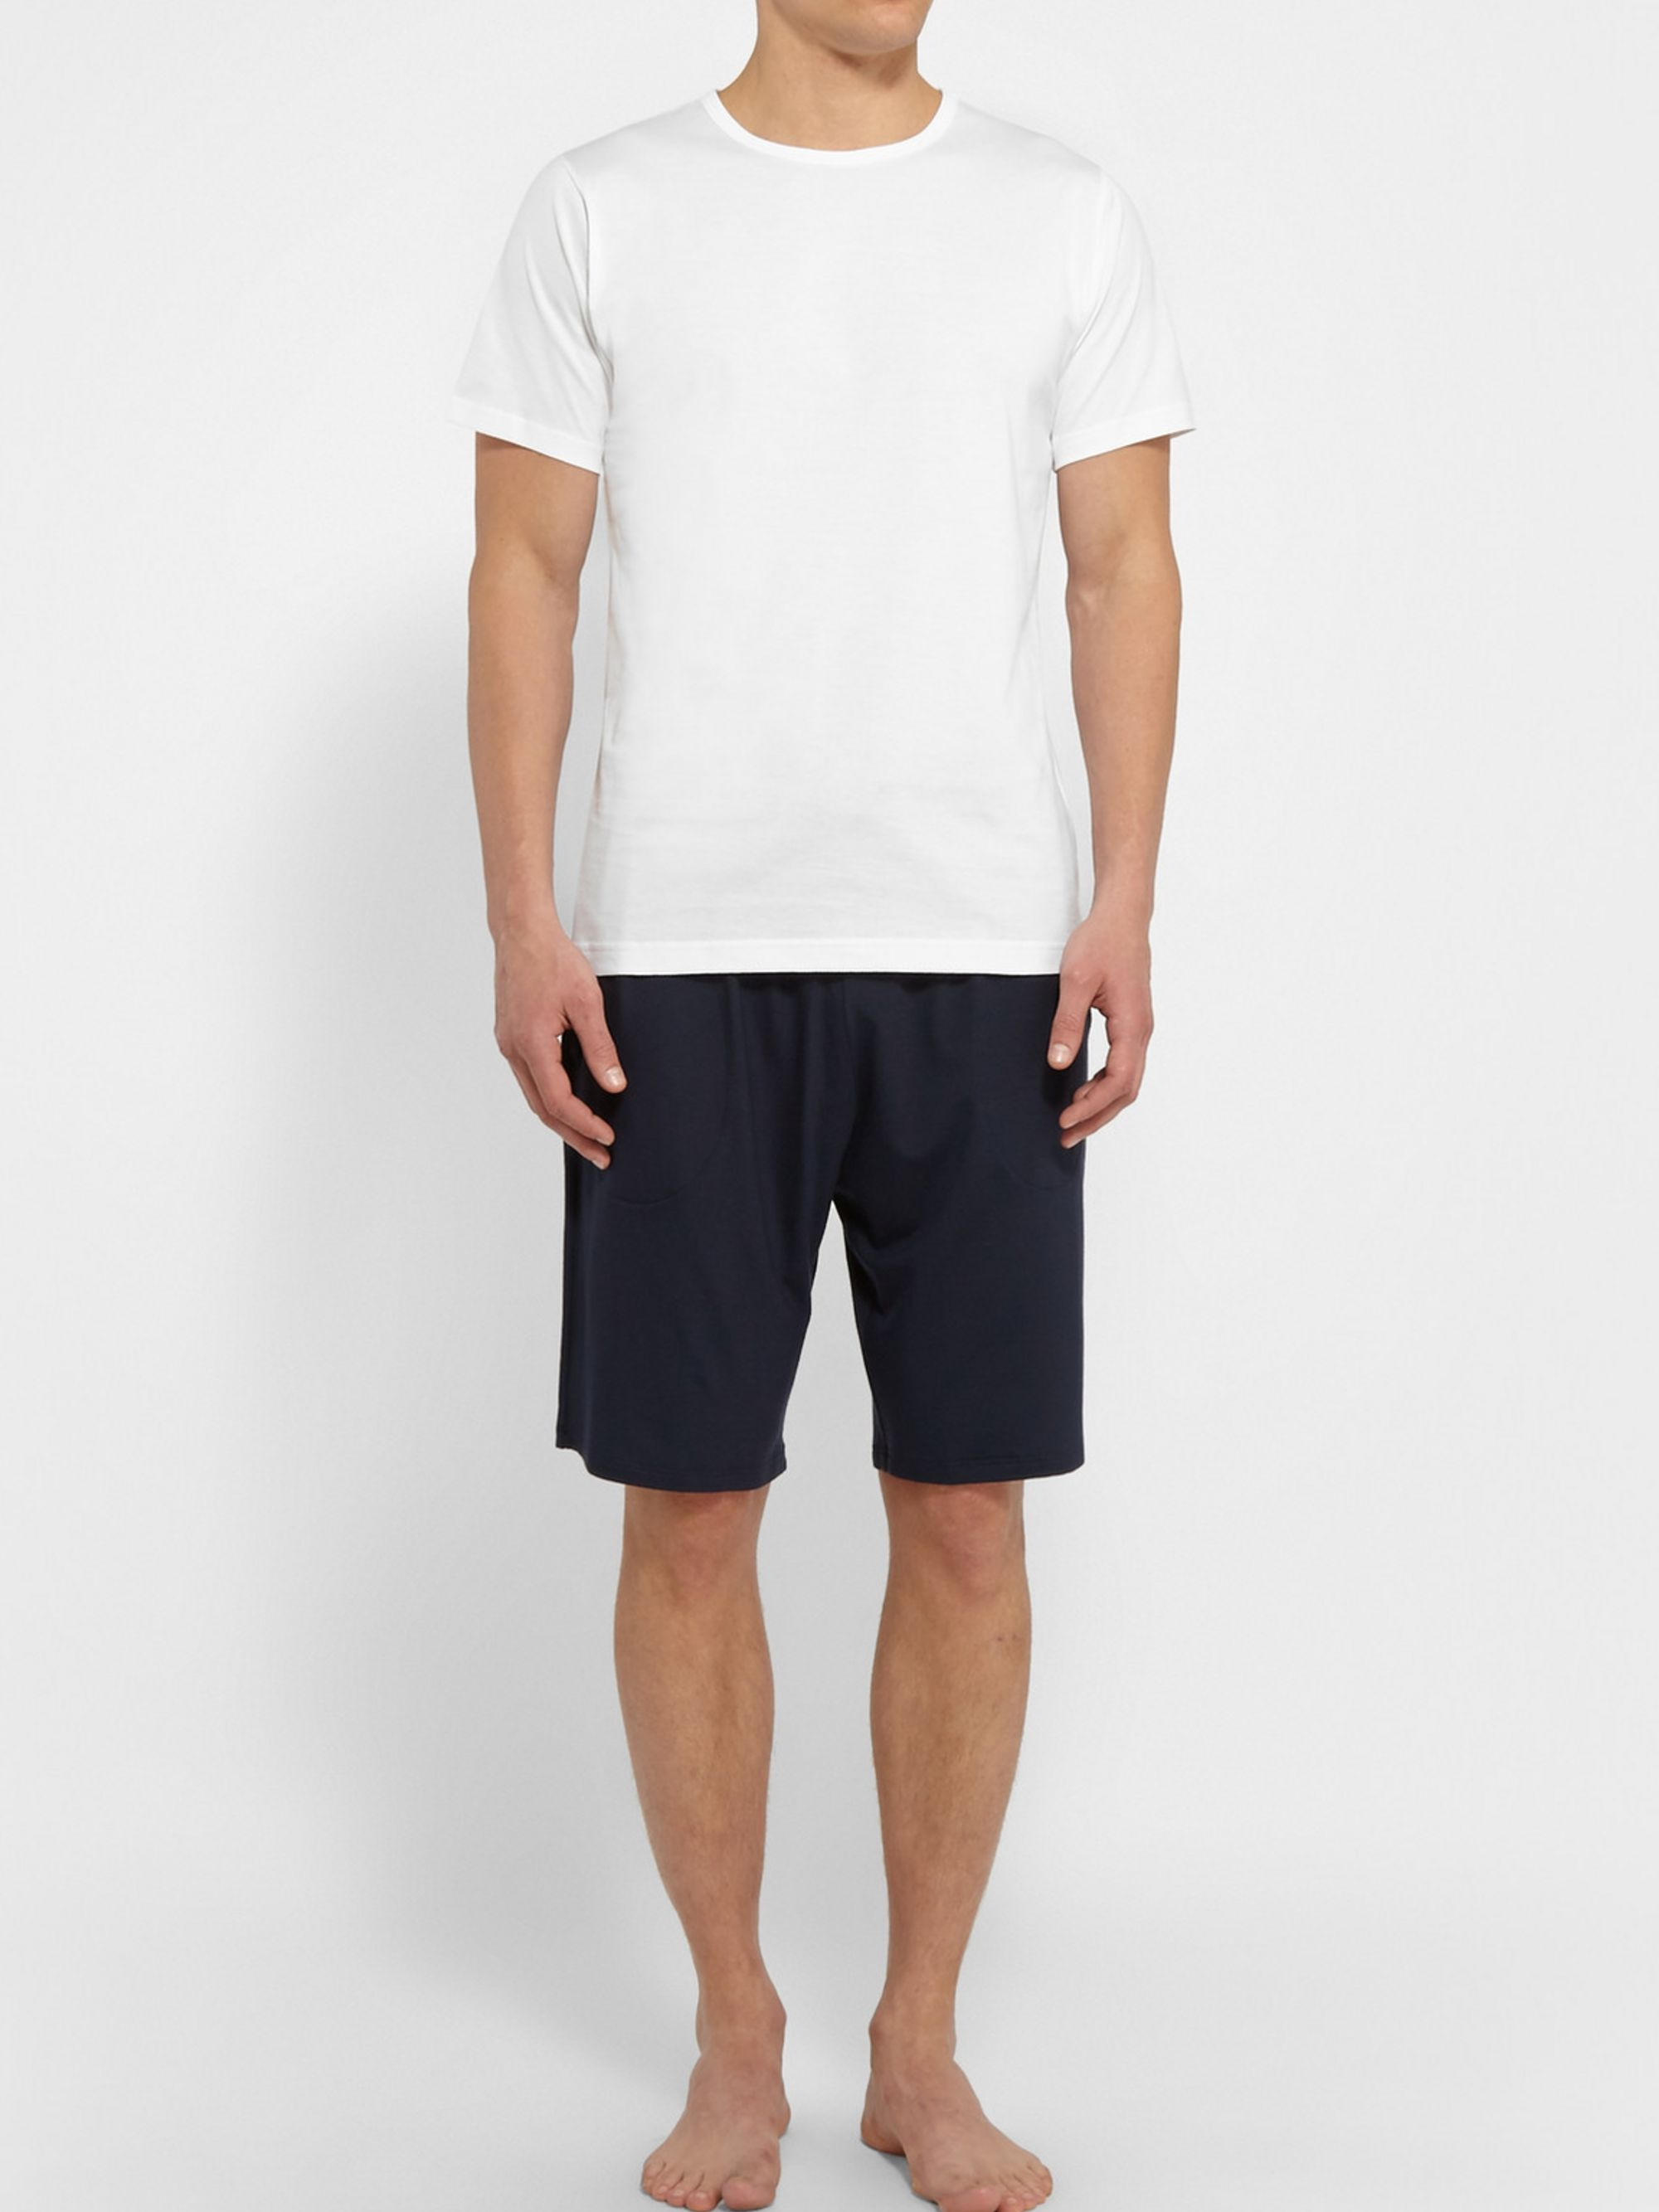 Sunspel Superfine Cotton Underwear T-Shirt